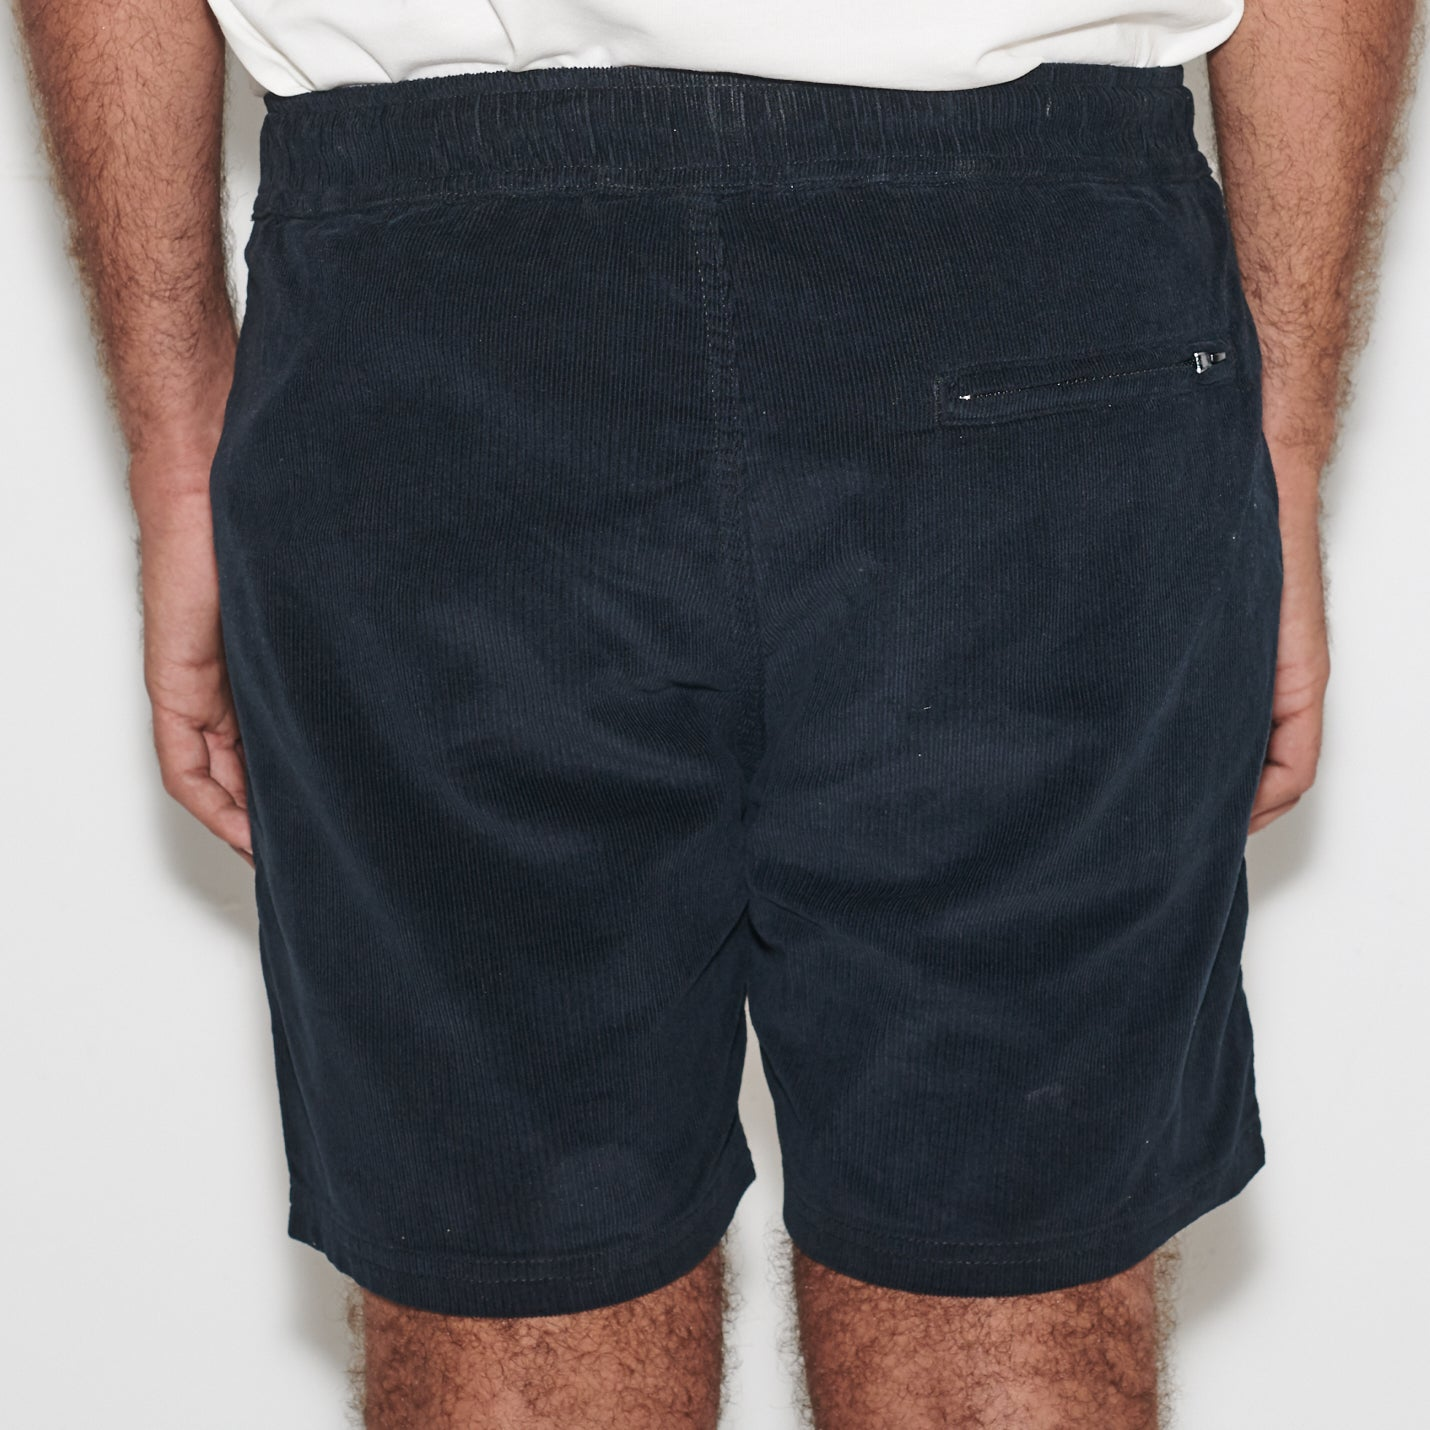 PANAMA CORD WALKSHORT BLACK